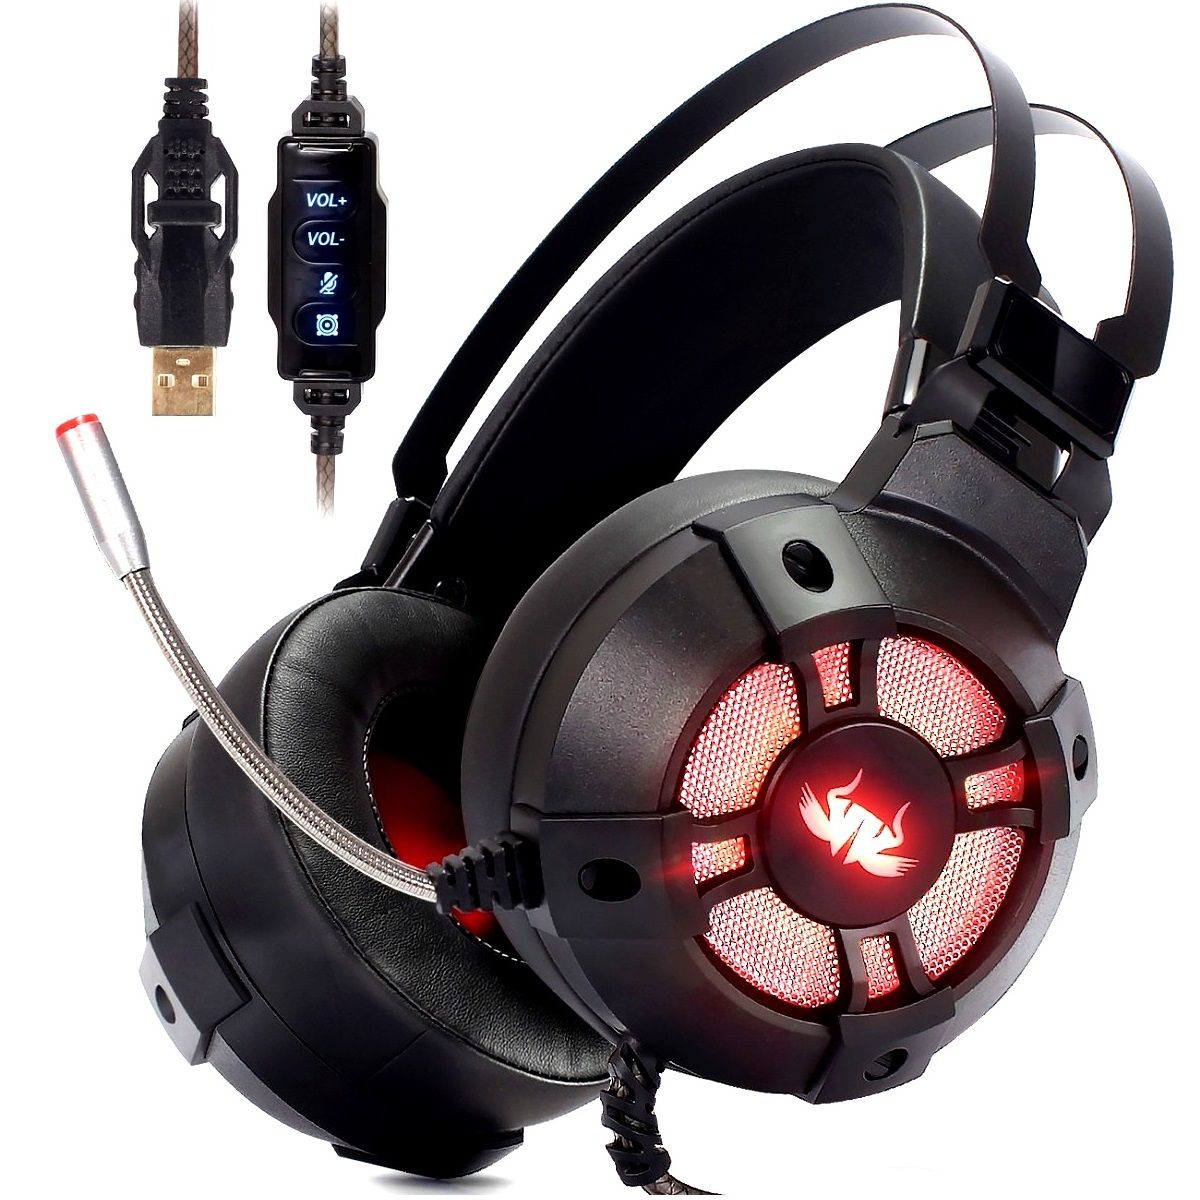 Fone Headset Gamer Extreme 7.1 USB PC PS4 Knup KP-446